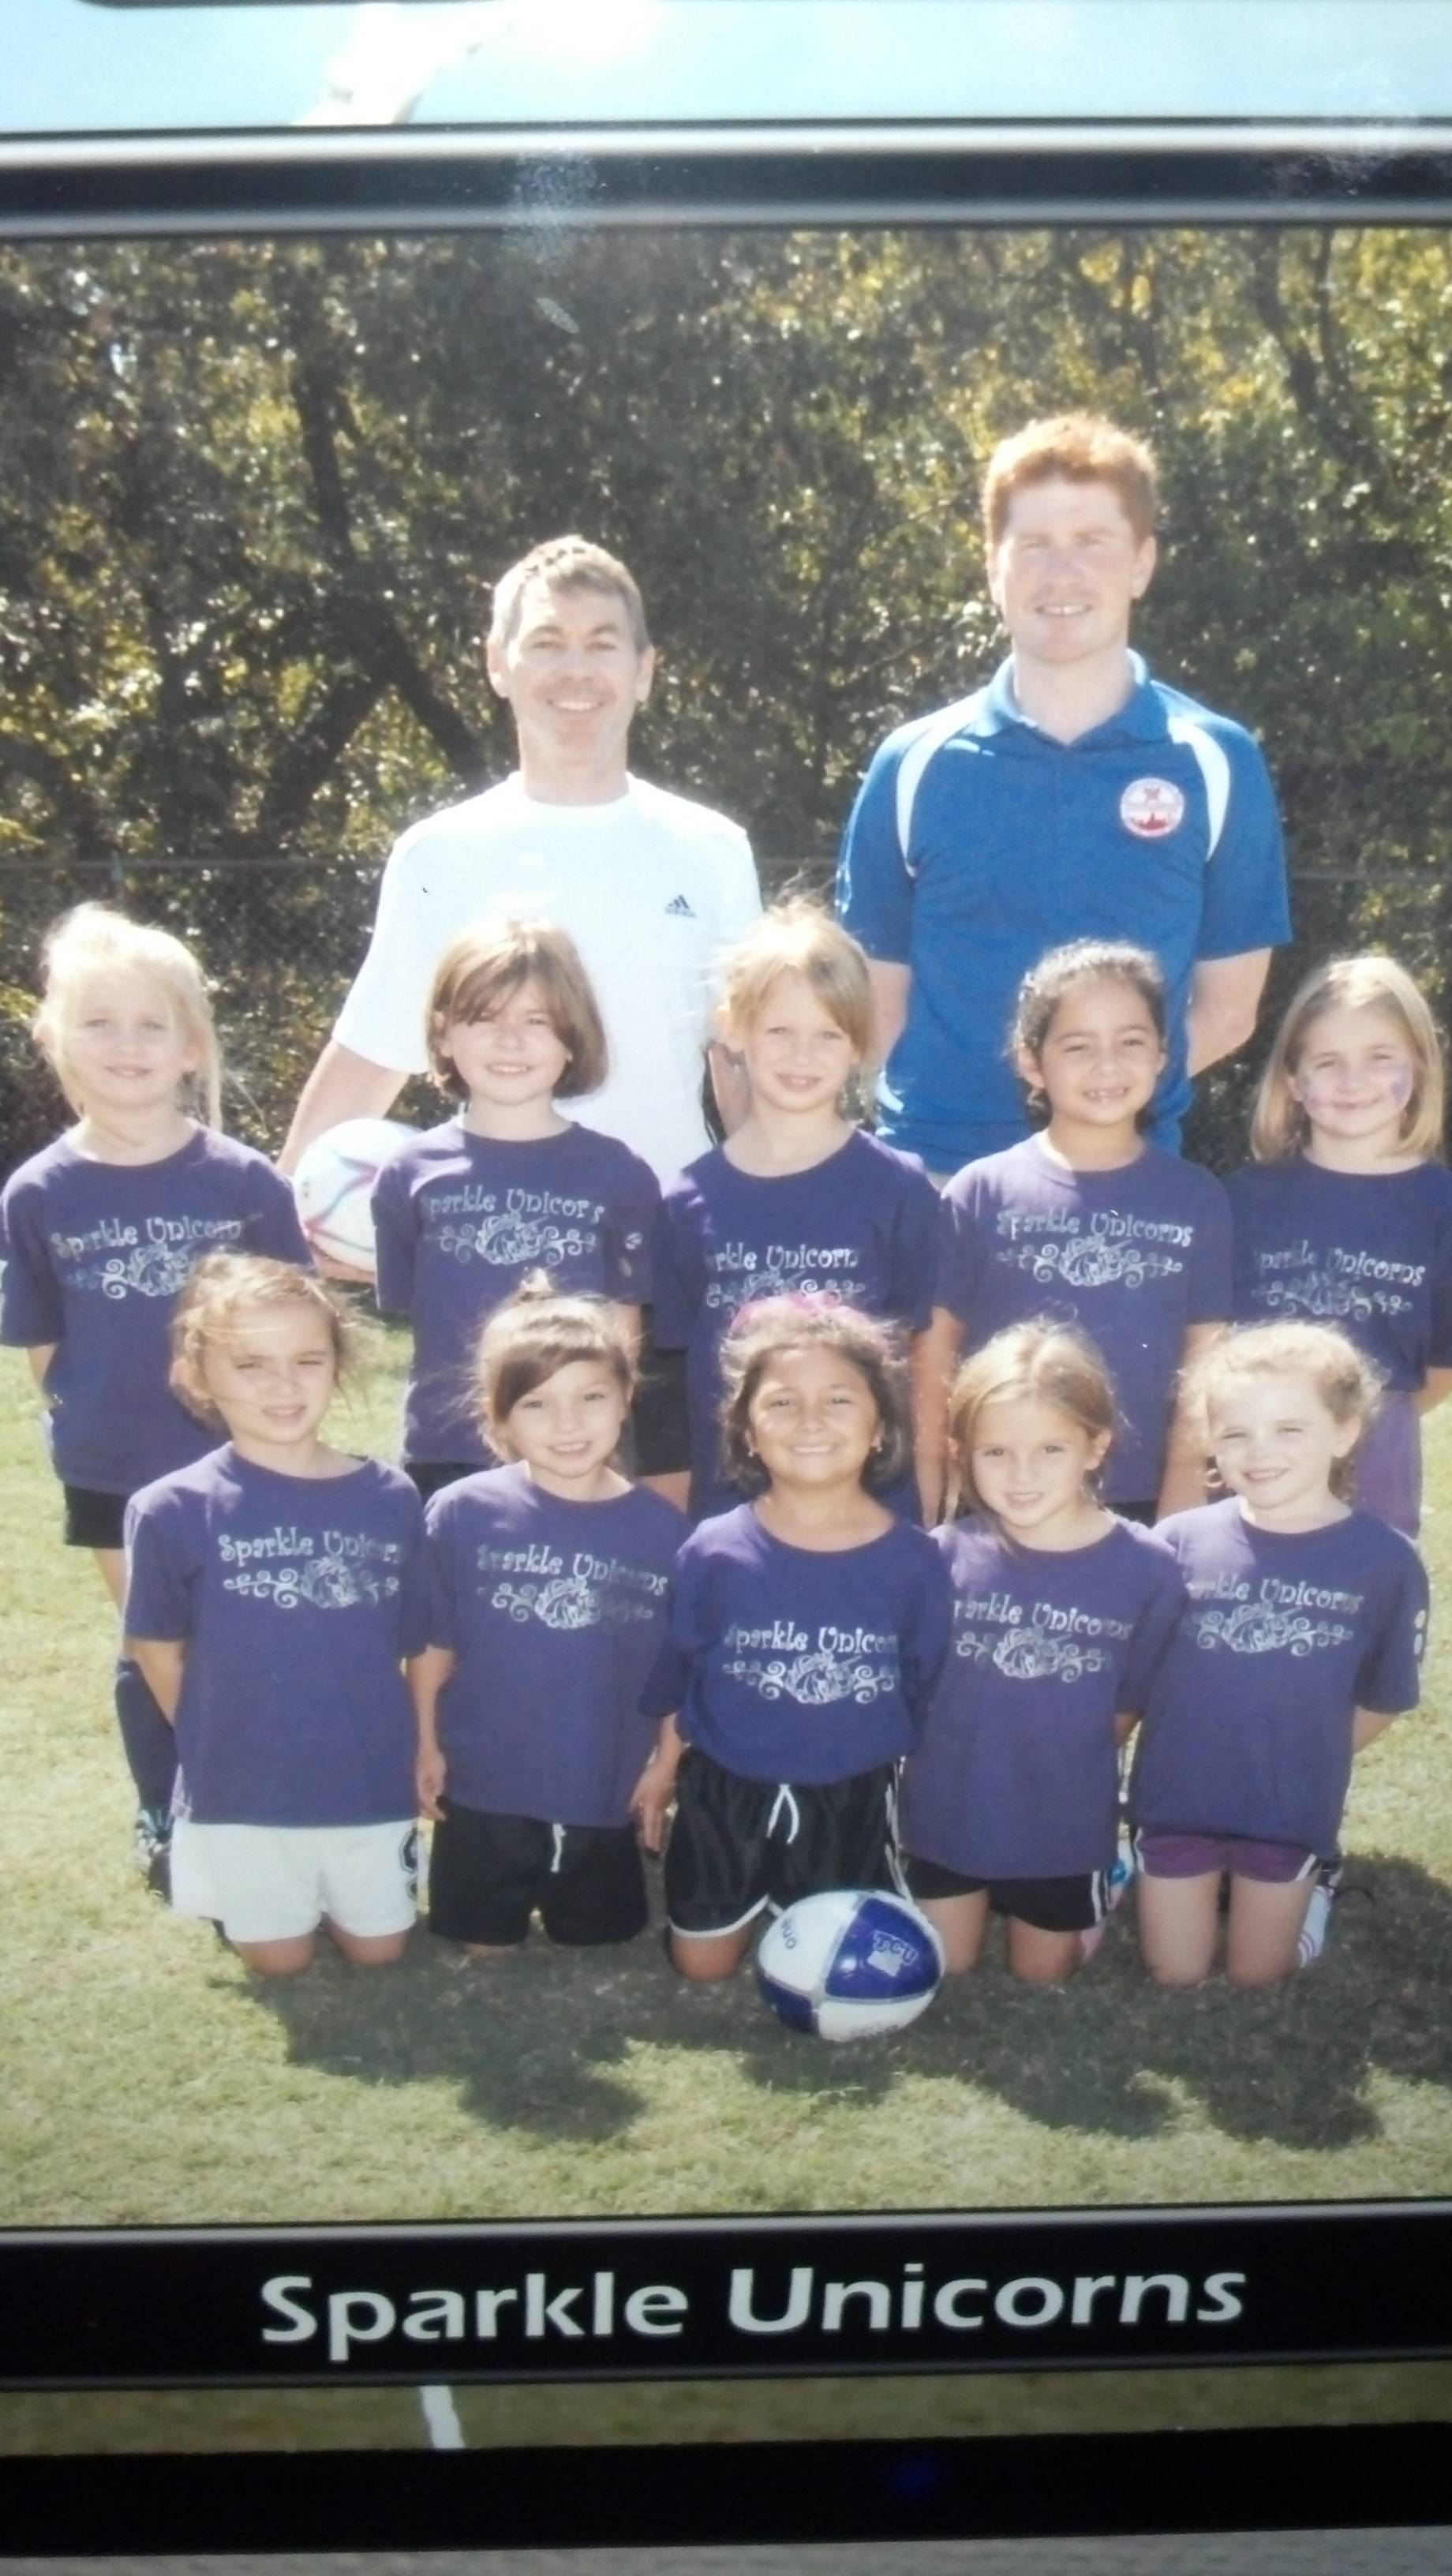 This is what happens when you let the girls choose the name of their soccer team